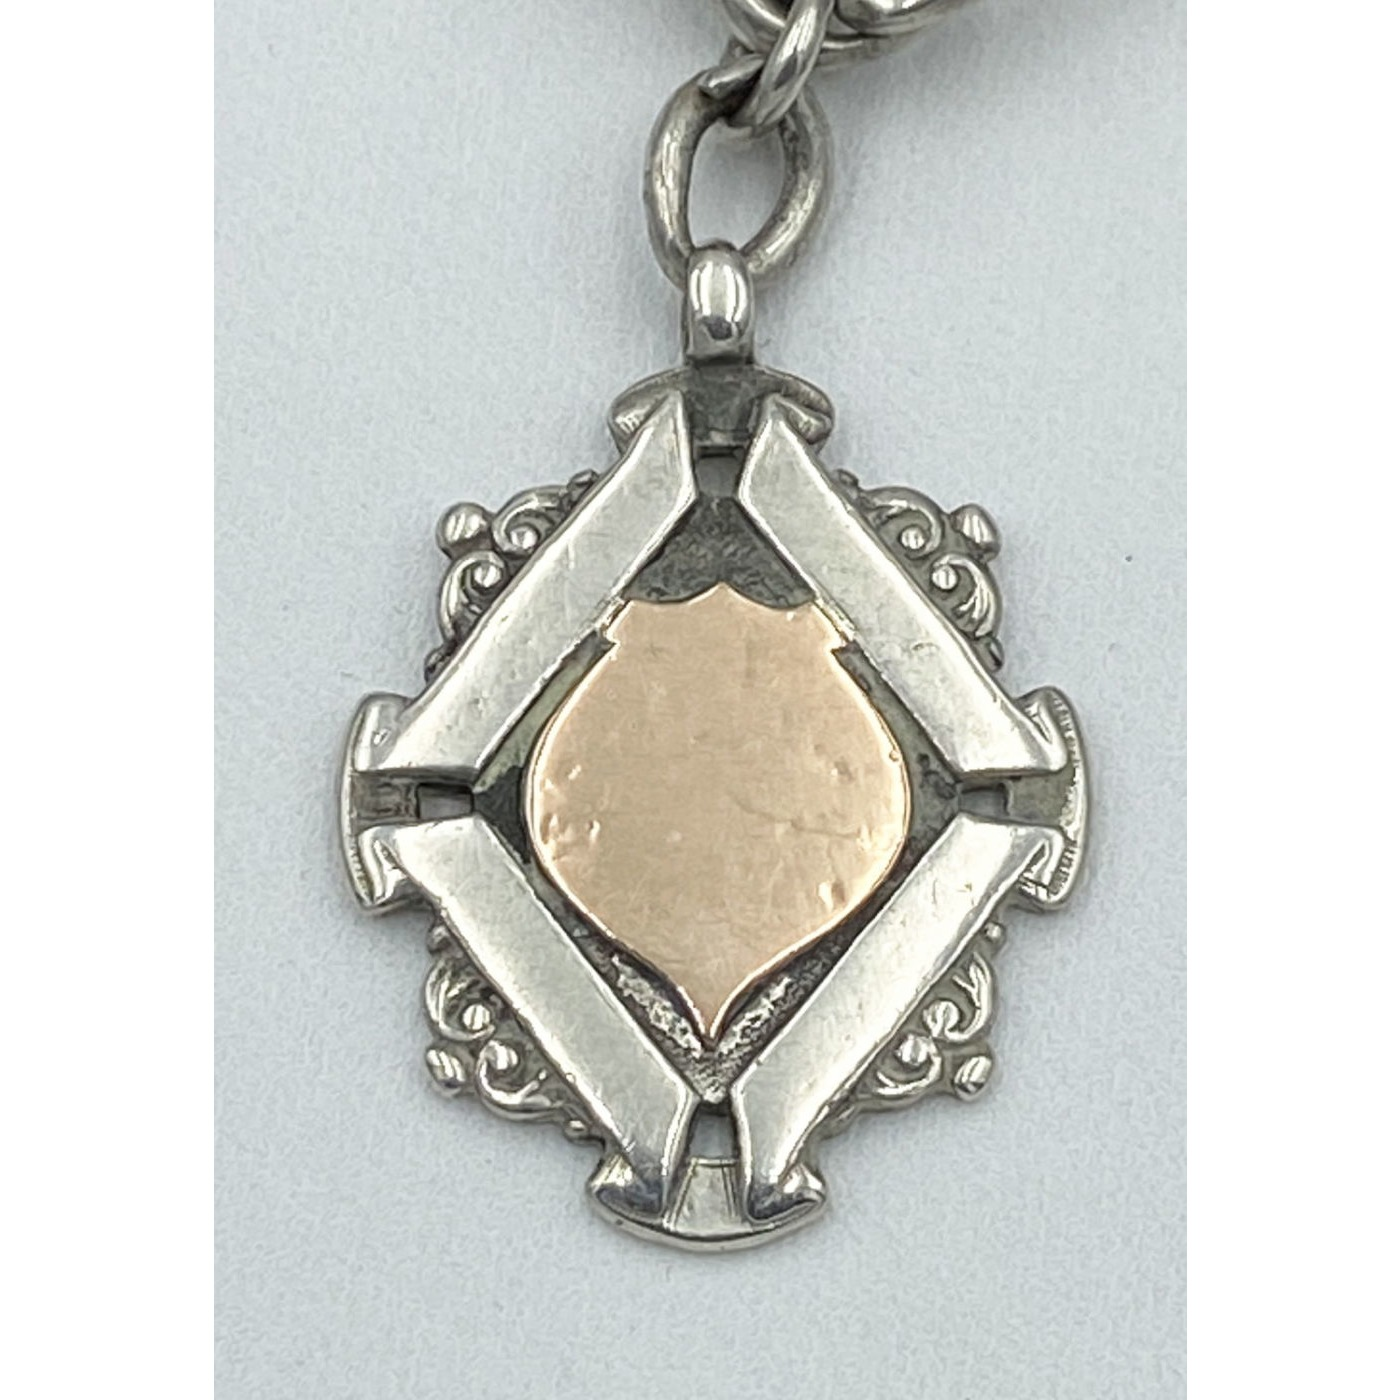 Excellent Diamond-Shaped Silver and Rose Gold Medal